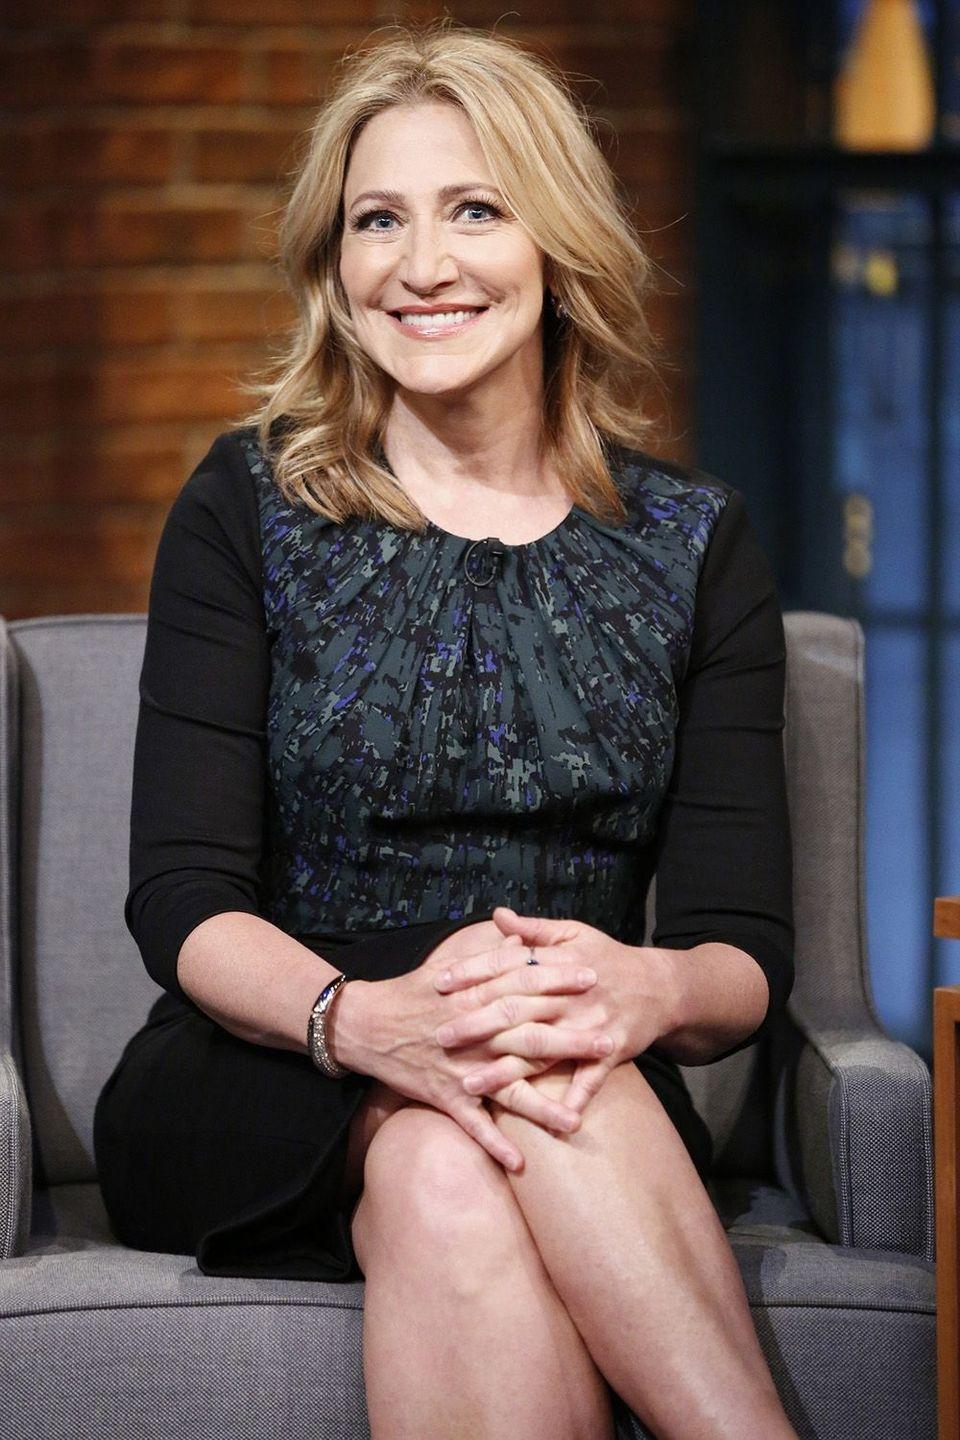 """<p>The <em>Nurse Jackie</em> star has been sober for almost 25 years now and reveals she's been able to develop her own steadiness by admitting, """"I had a lot of support. Still do. But they couldn't go through it for me,""""</p><p><em>[h/t <a href=""""http://nypost.com/2013/04/12/edie-falco-clean-sober/"""" rel=""""nofollow noopener"""" target=""""_blank"""" data-ylk=""""slk:The New York Post"""" class=""""link rapid-noclick-resp"""">The New York Post</a></em></p>"""